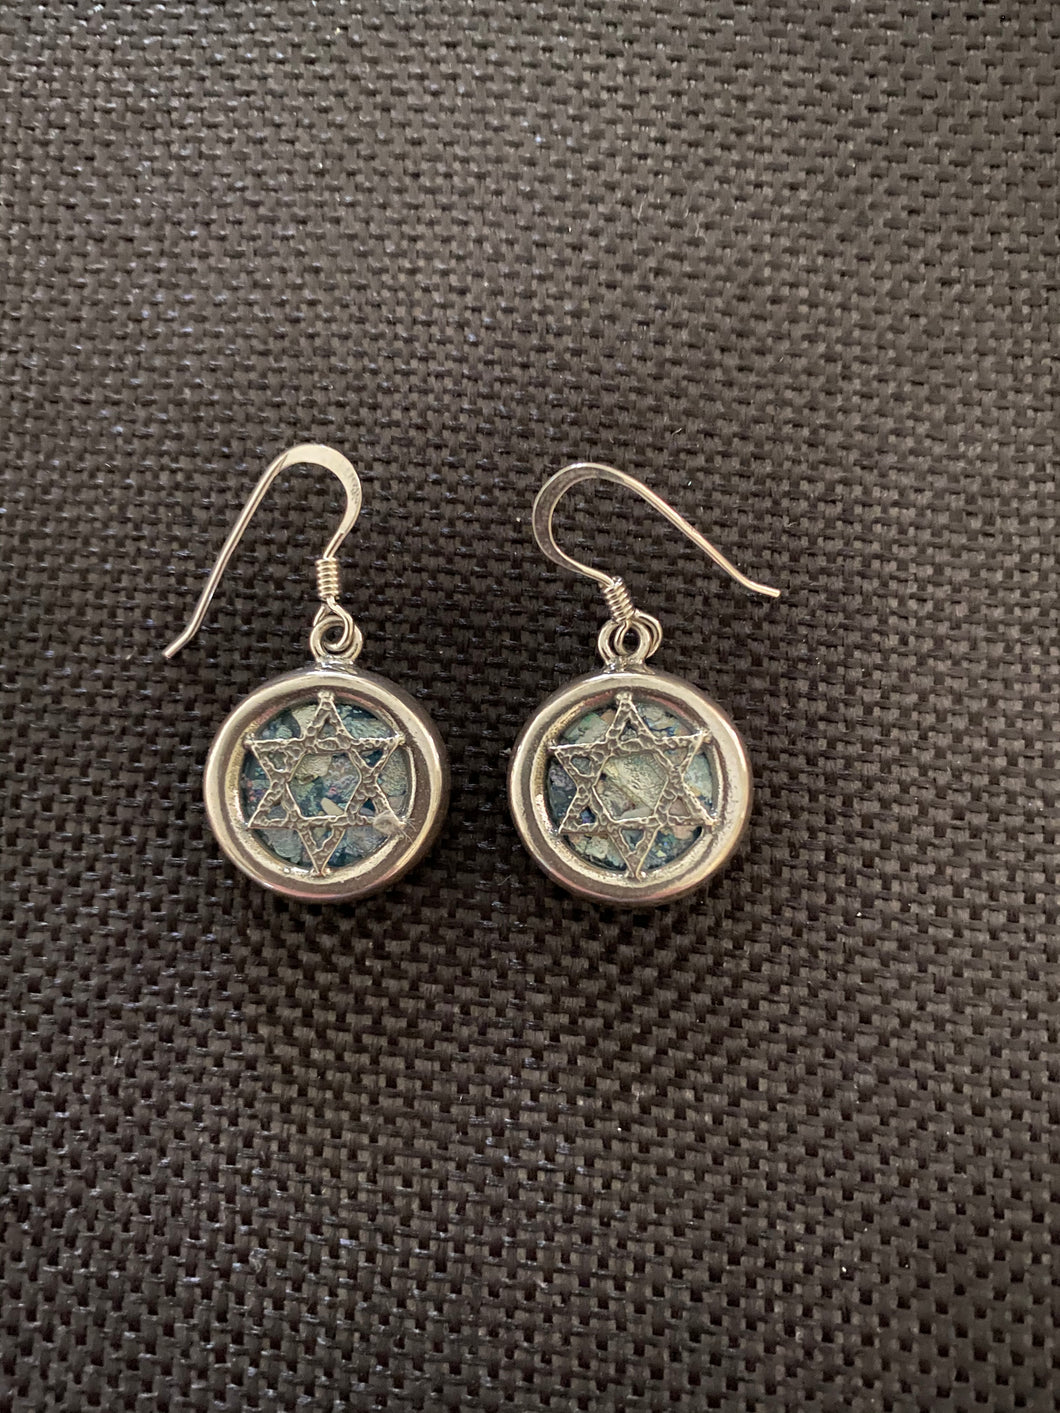 Silver Roman Glass Earrings SRGE0021